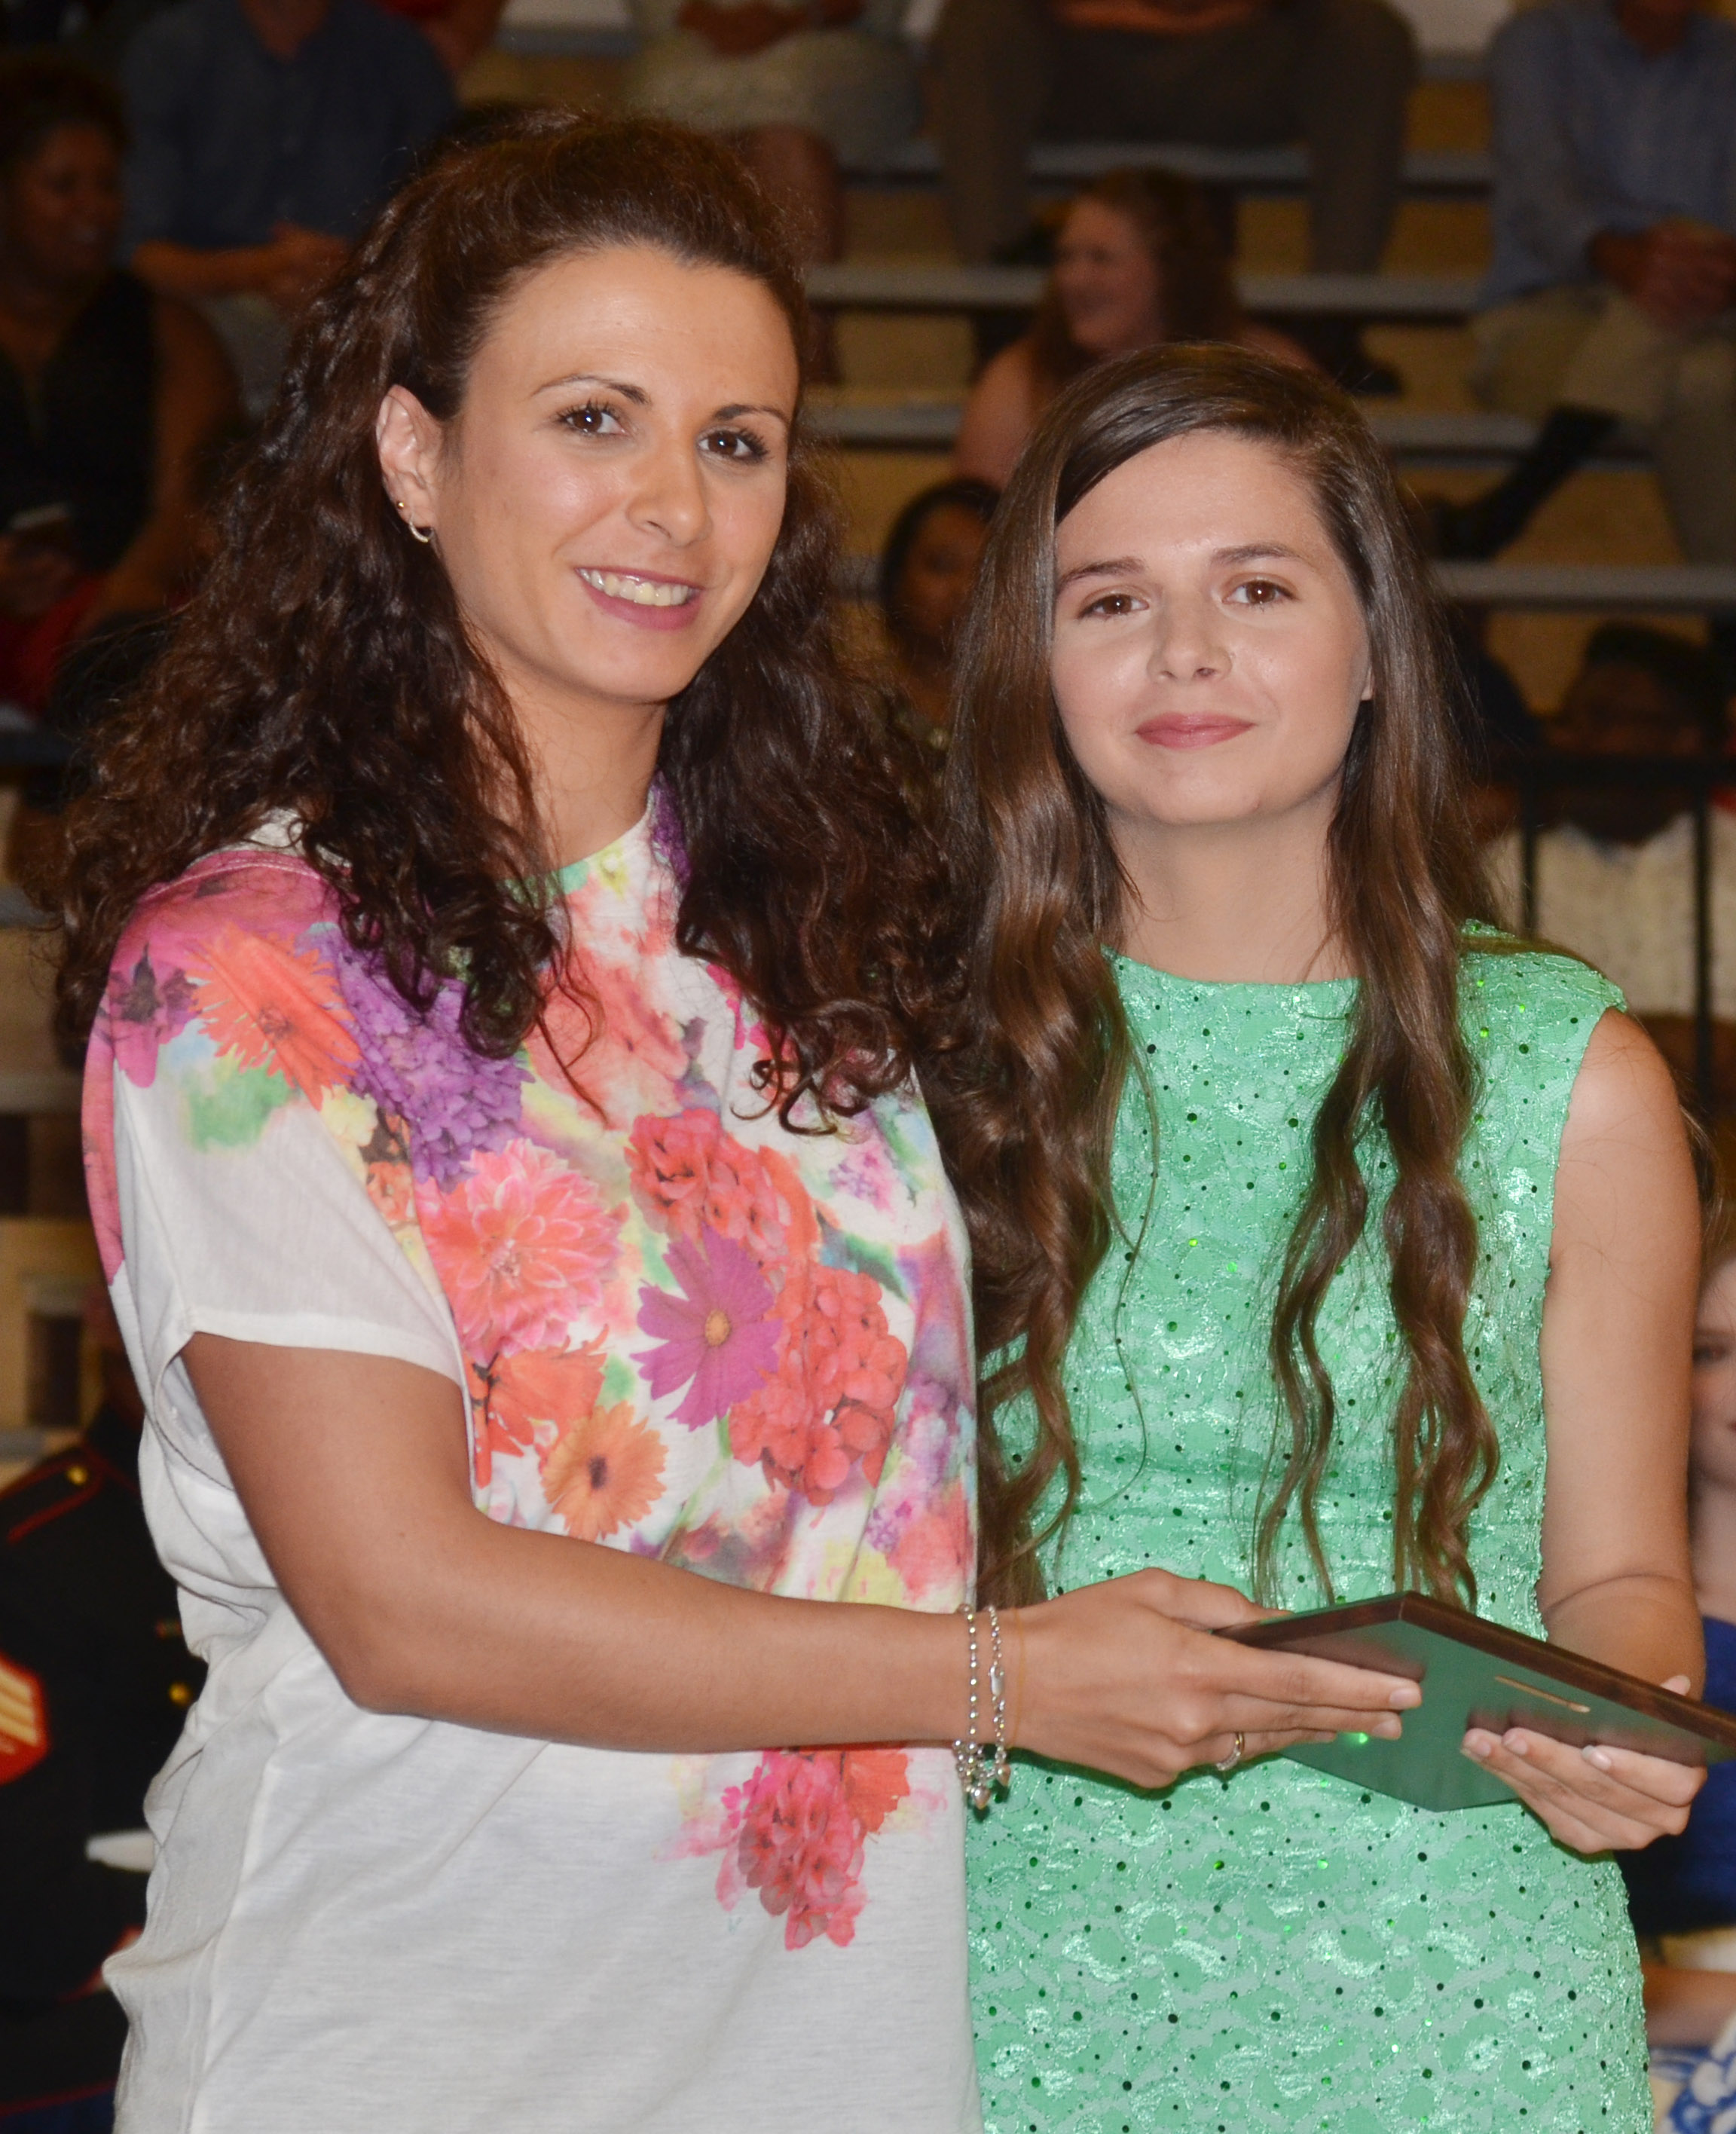 Shauna Jones receives the foreign language award. She is pictured with Spanish teacher Leticia Lopez.